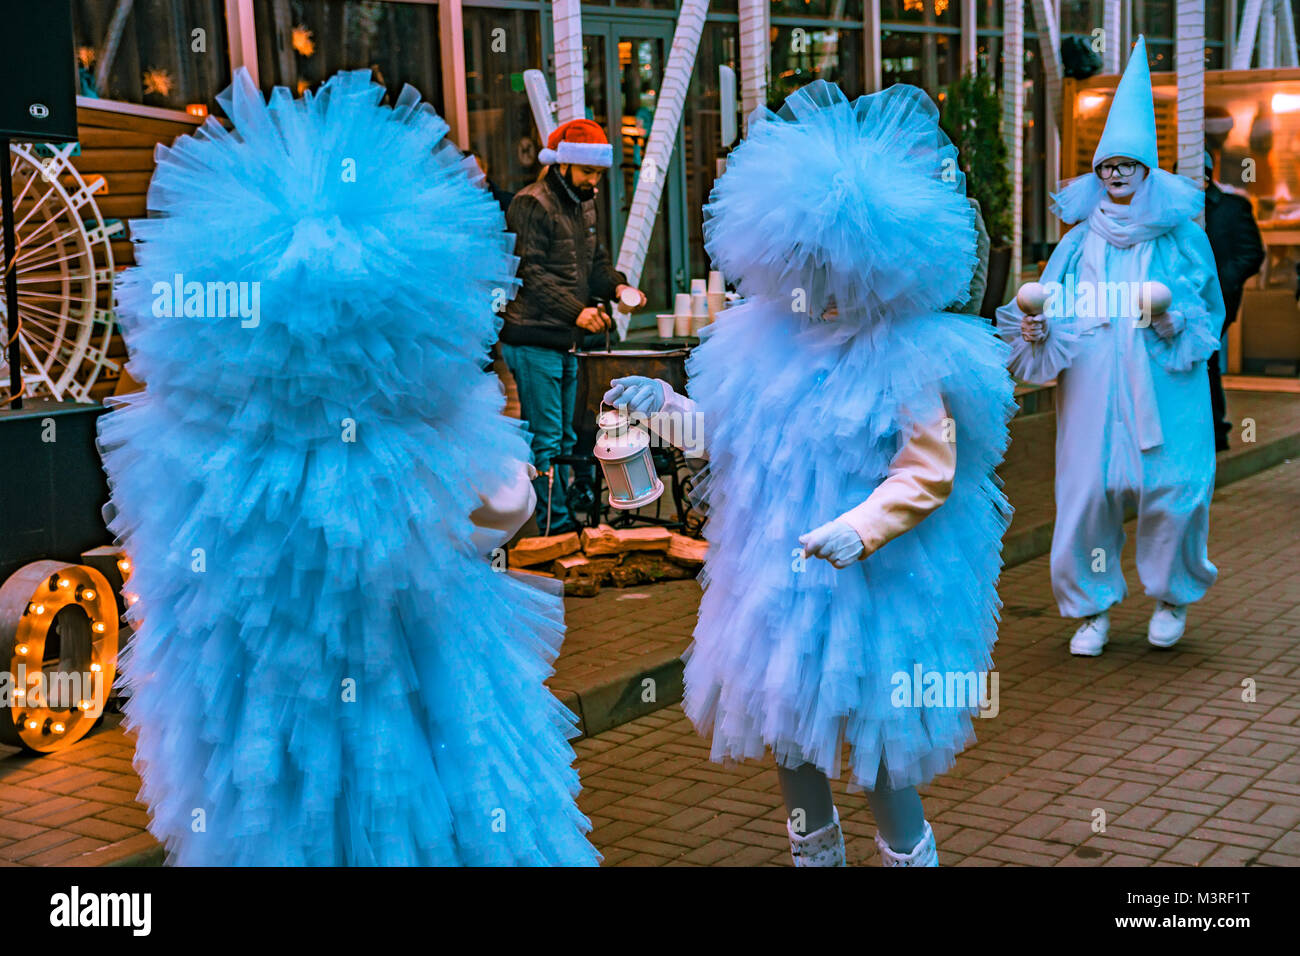 People in fluffy blue costumes in street - Stock Image